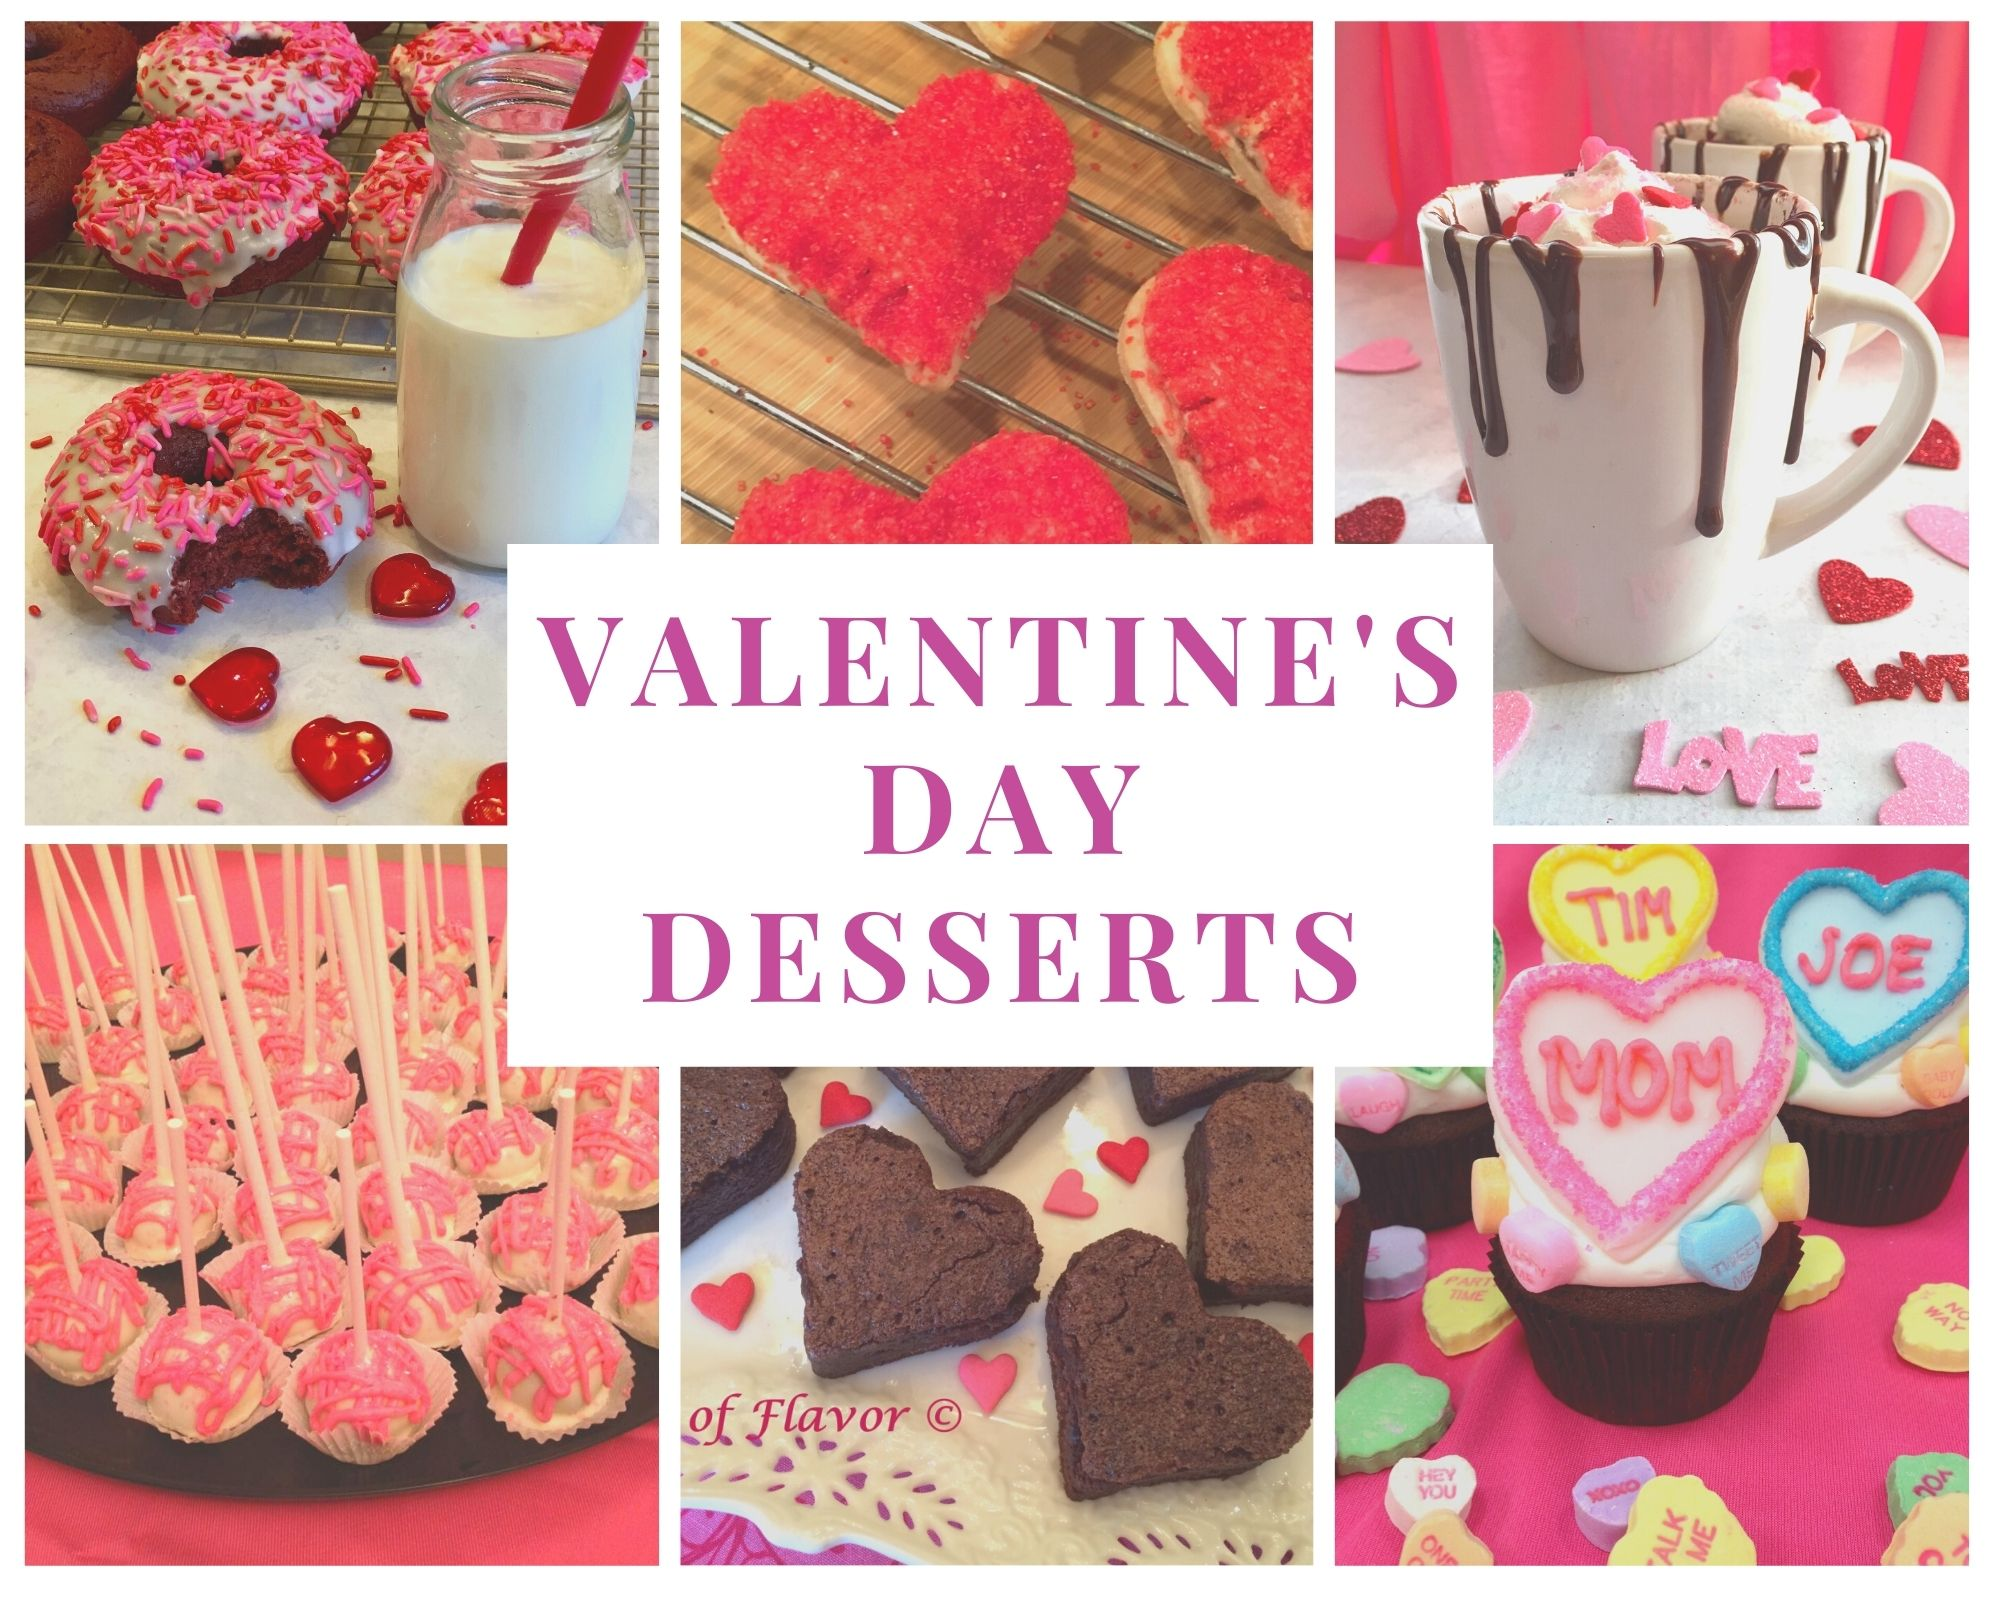 Valentine's Day desserts collage with text overlay